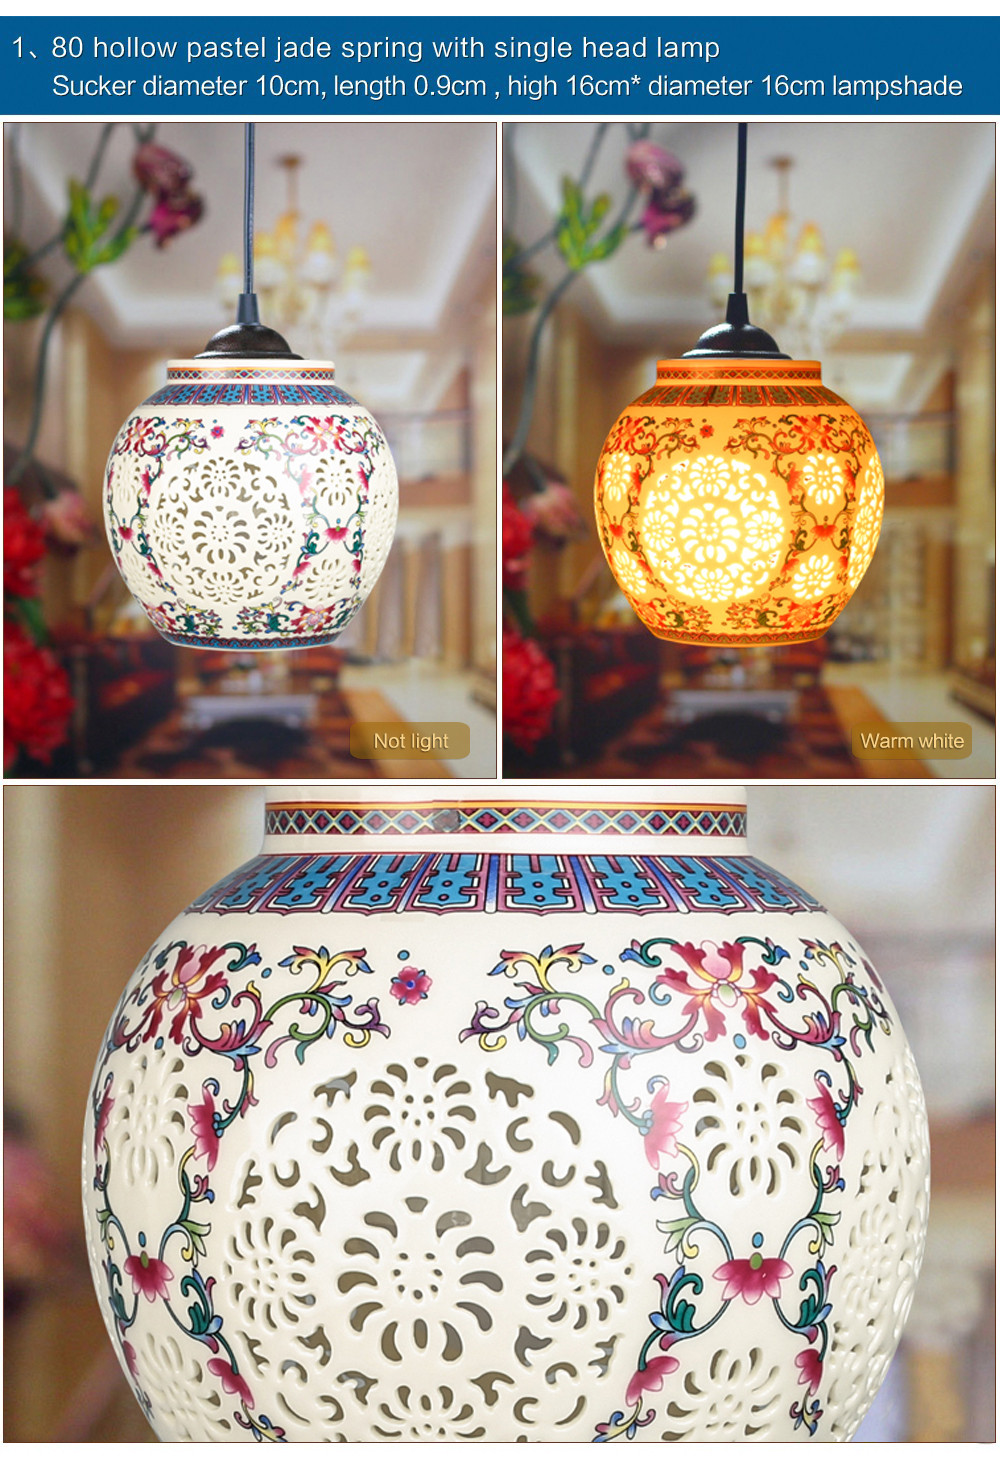 Antique Retro Ceramic Lamp Vintage Lamp Loft E27 90-260V Porcelain Pendant Lamp Indoor Lighting Dining Lighting Fixtures